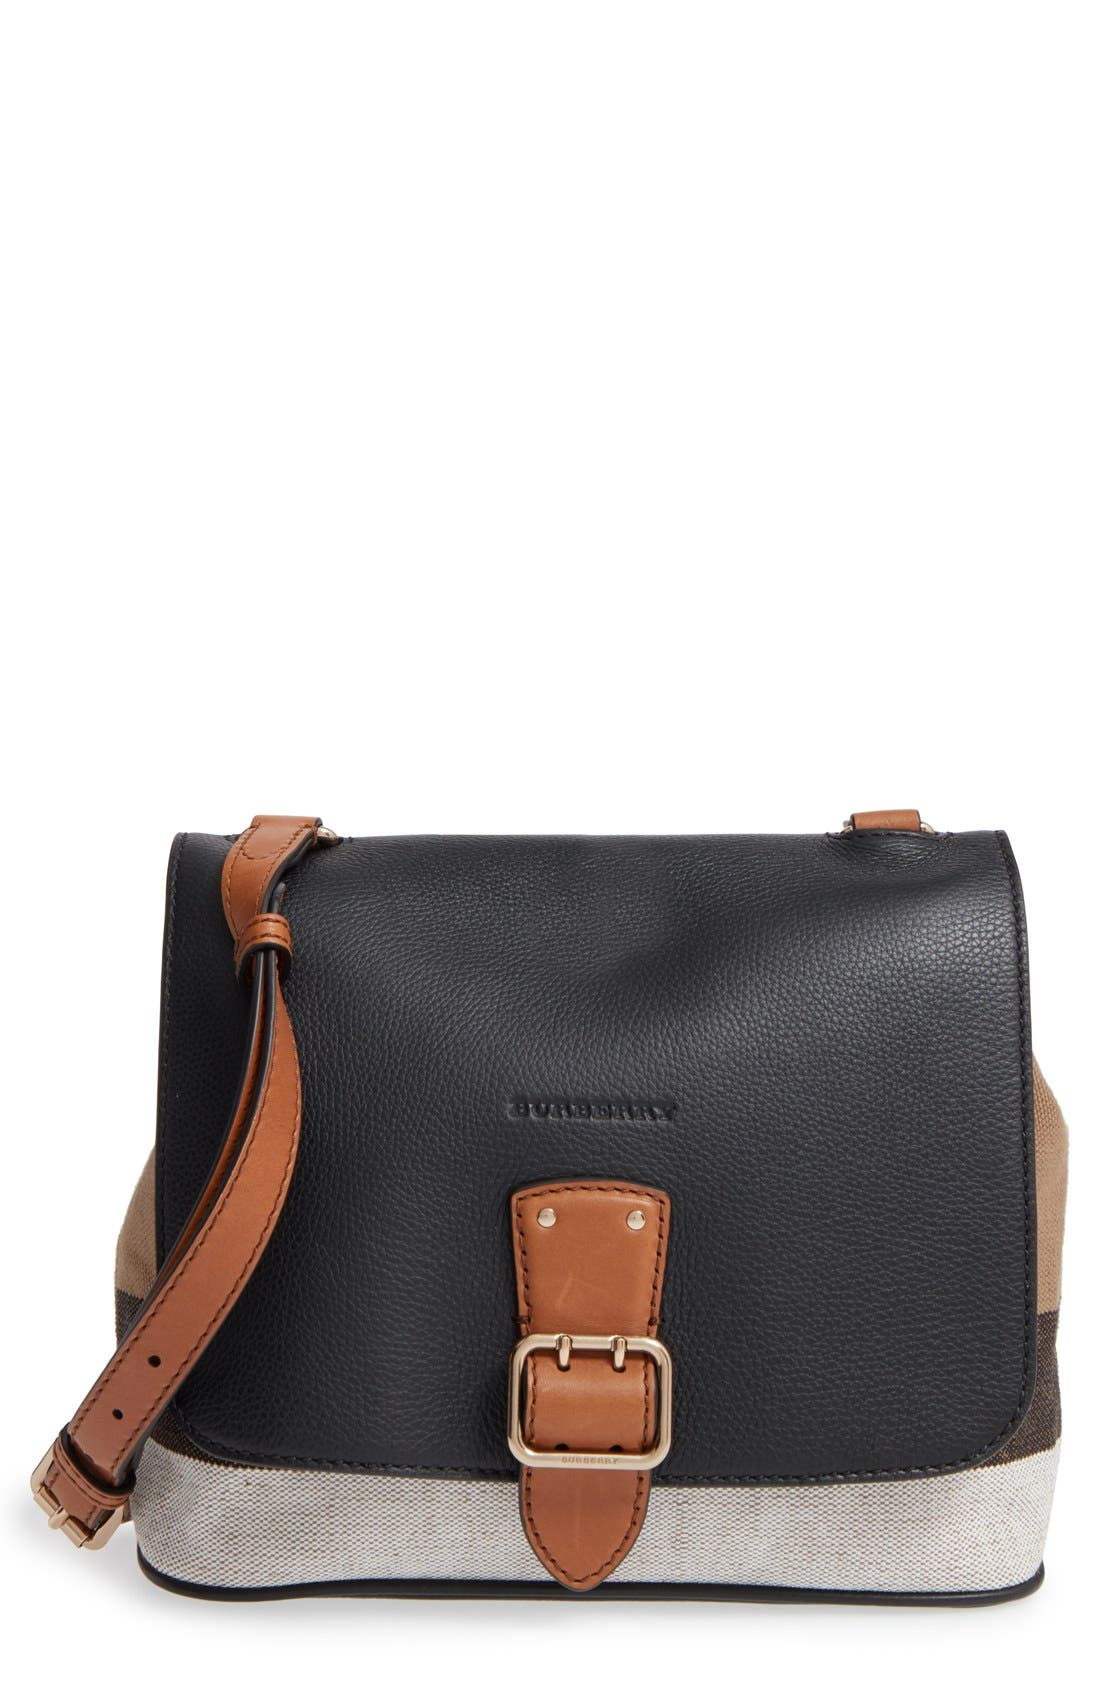 Alternate Image 1 Selected - Burberry 'Small Shellwood' Canvas & Leather Crossbody Bag